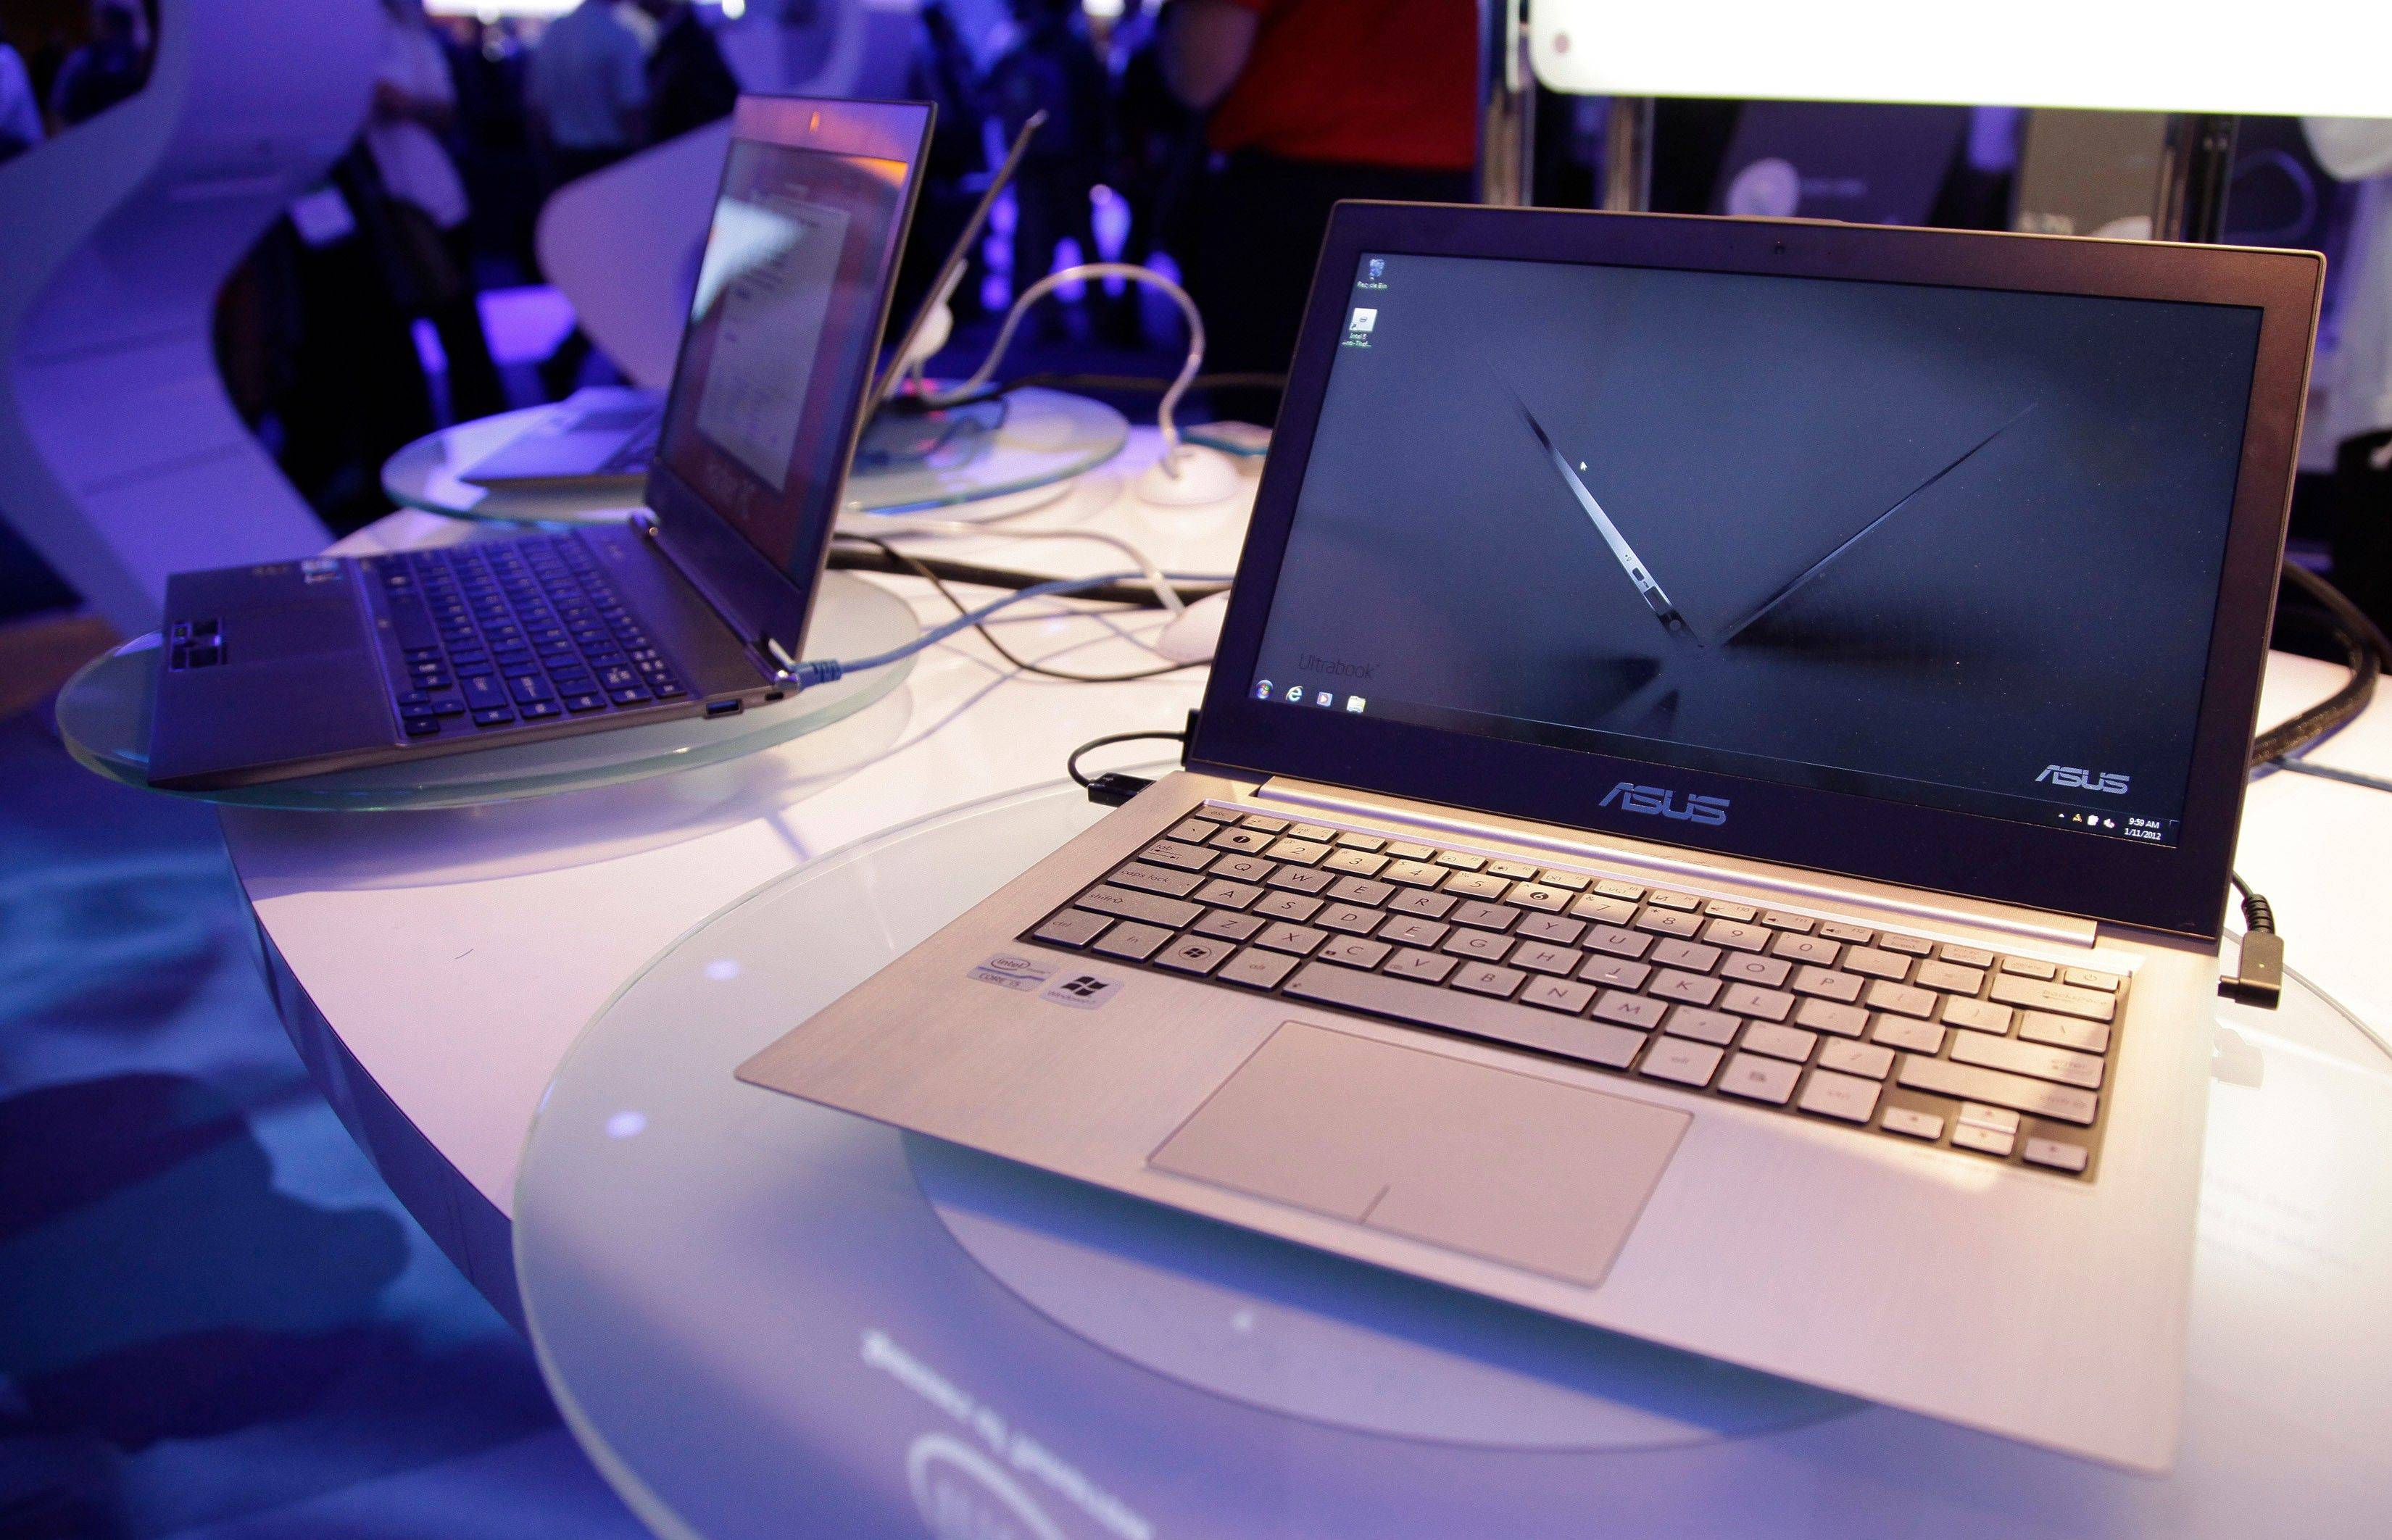 Ultrabooks sit on display at the Intel exhibit at the 2012 International CES trade show, in Las Vegas.